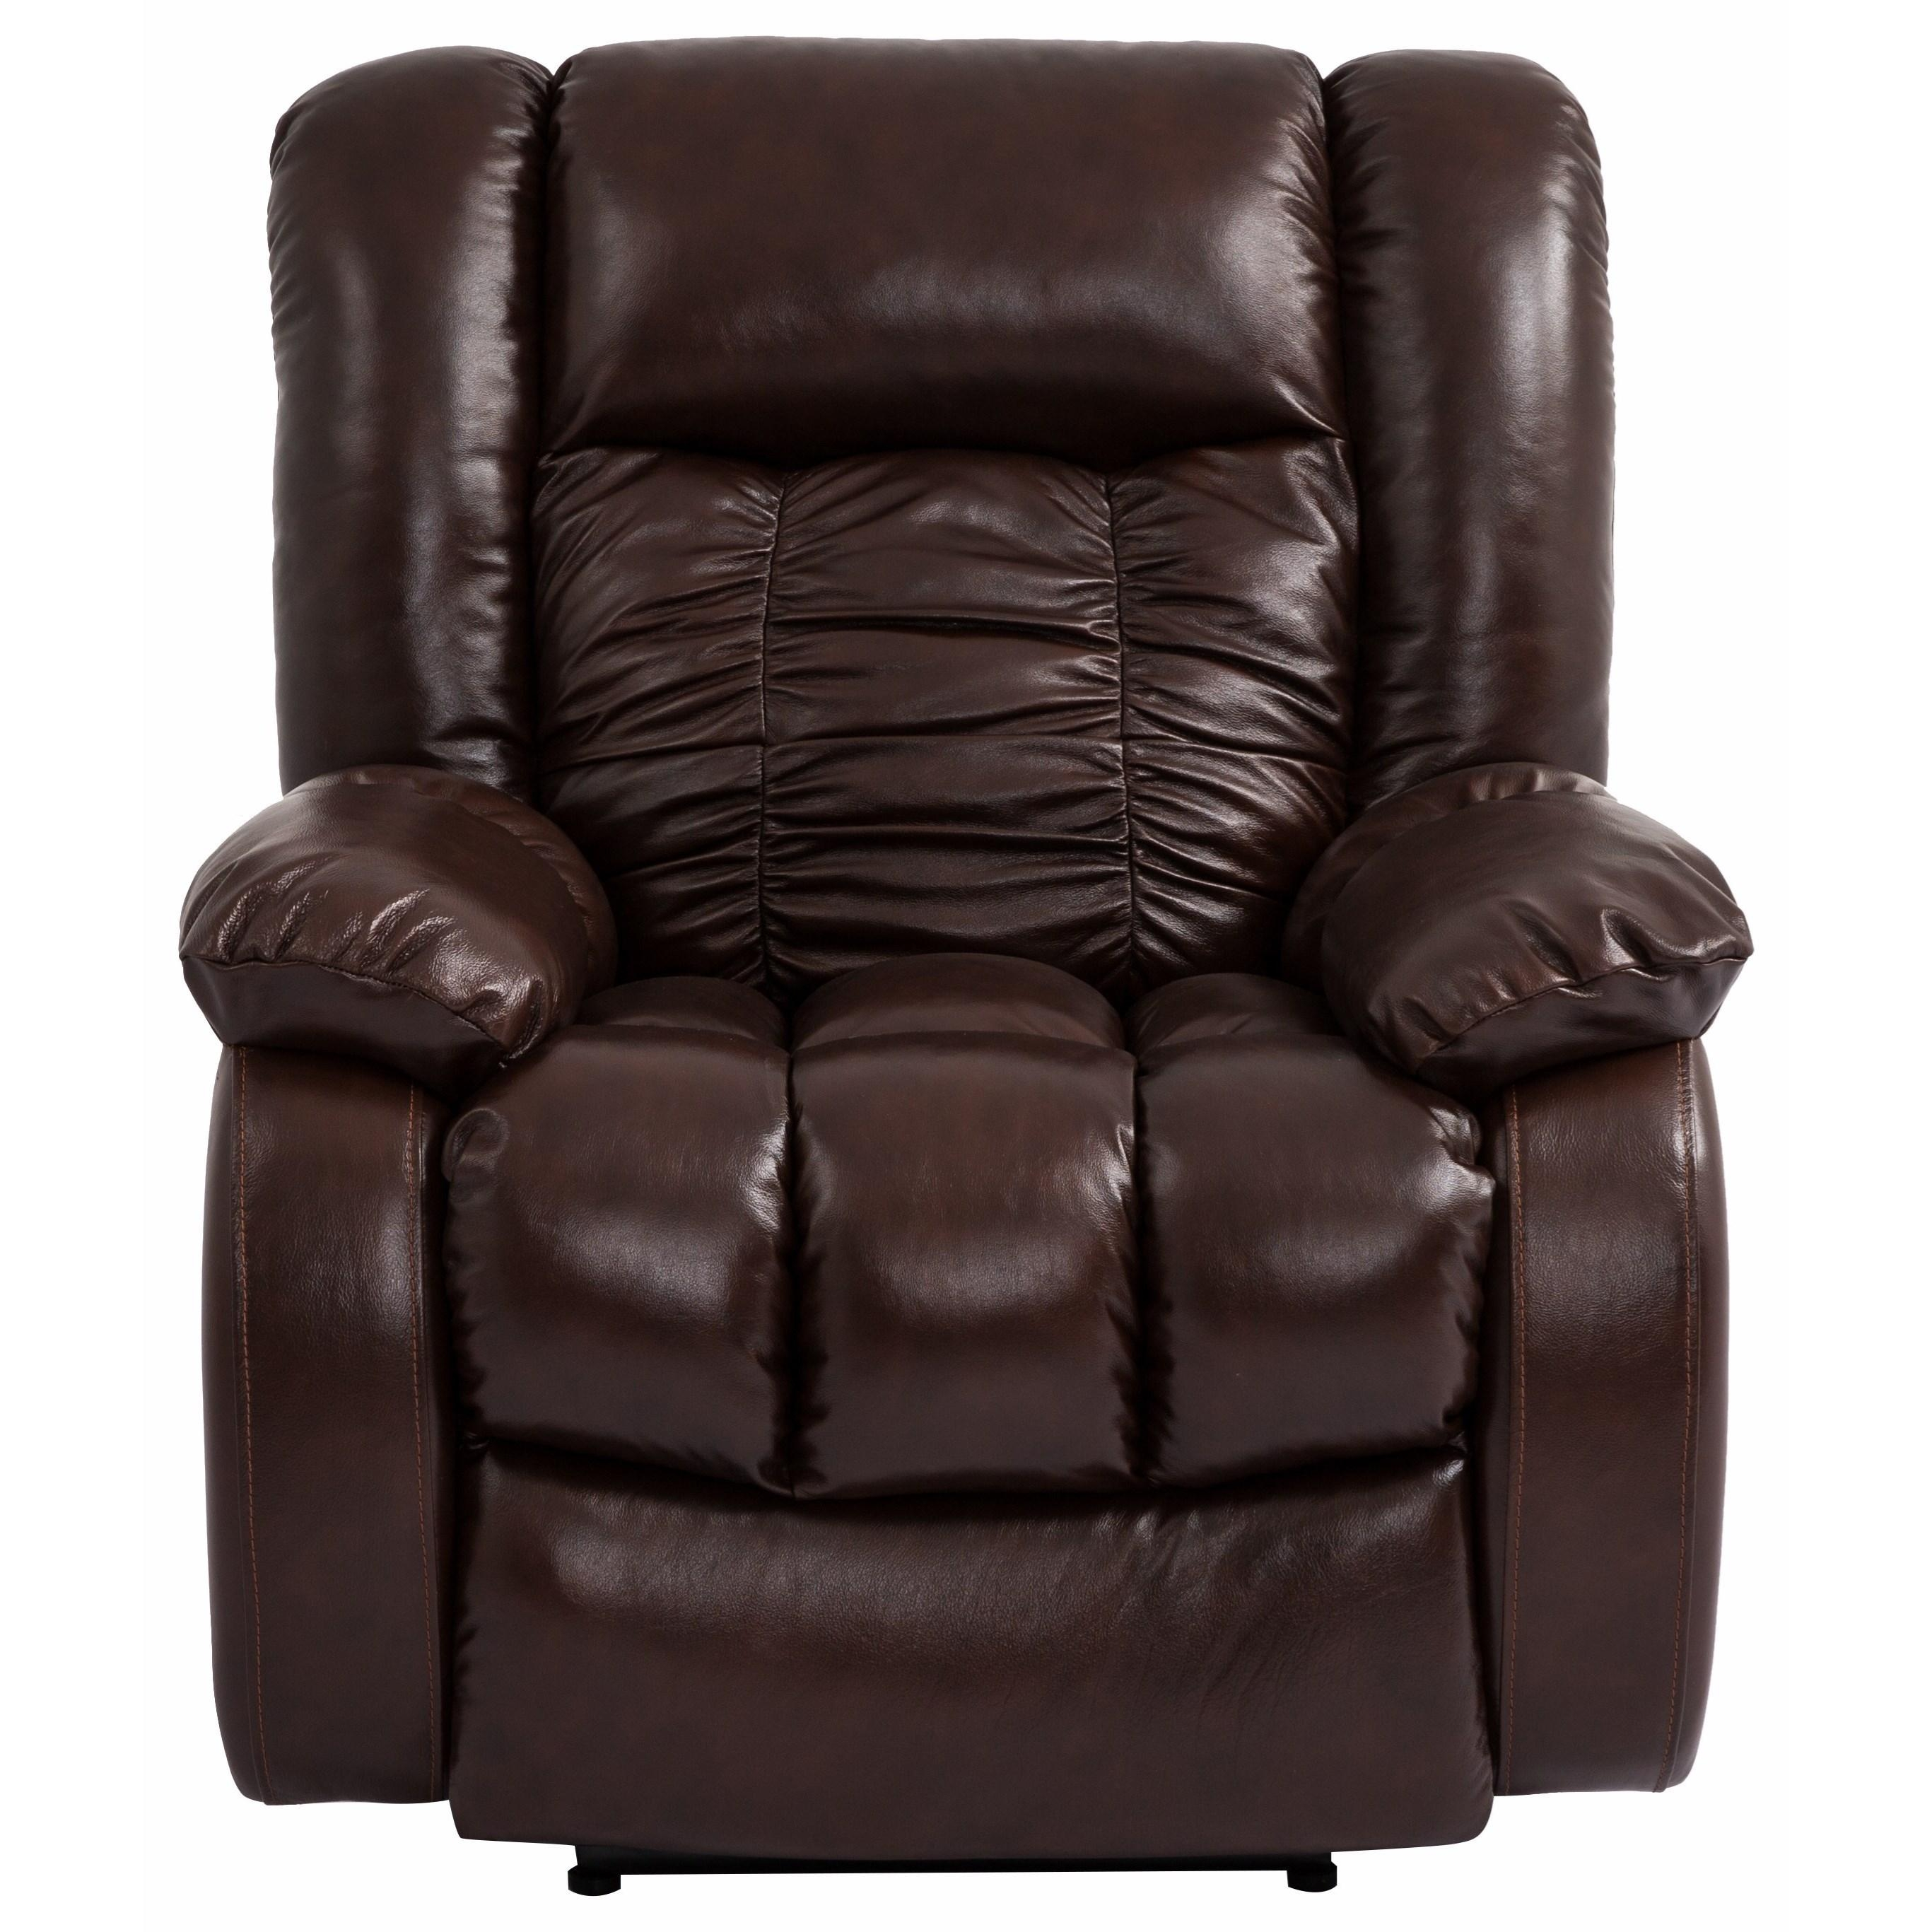 Cheers Sofa Uk358 Glider Recliner With Pillow Arms – Royal Pertaining To Cheers Sofas (Image 10 of 20)